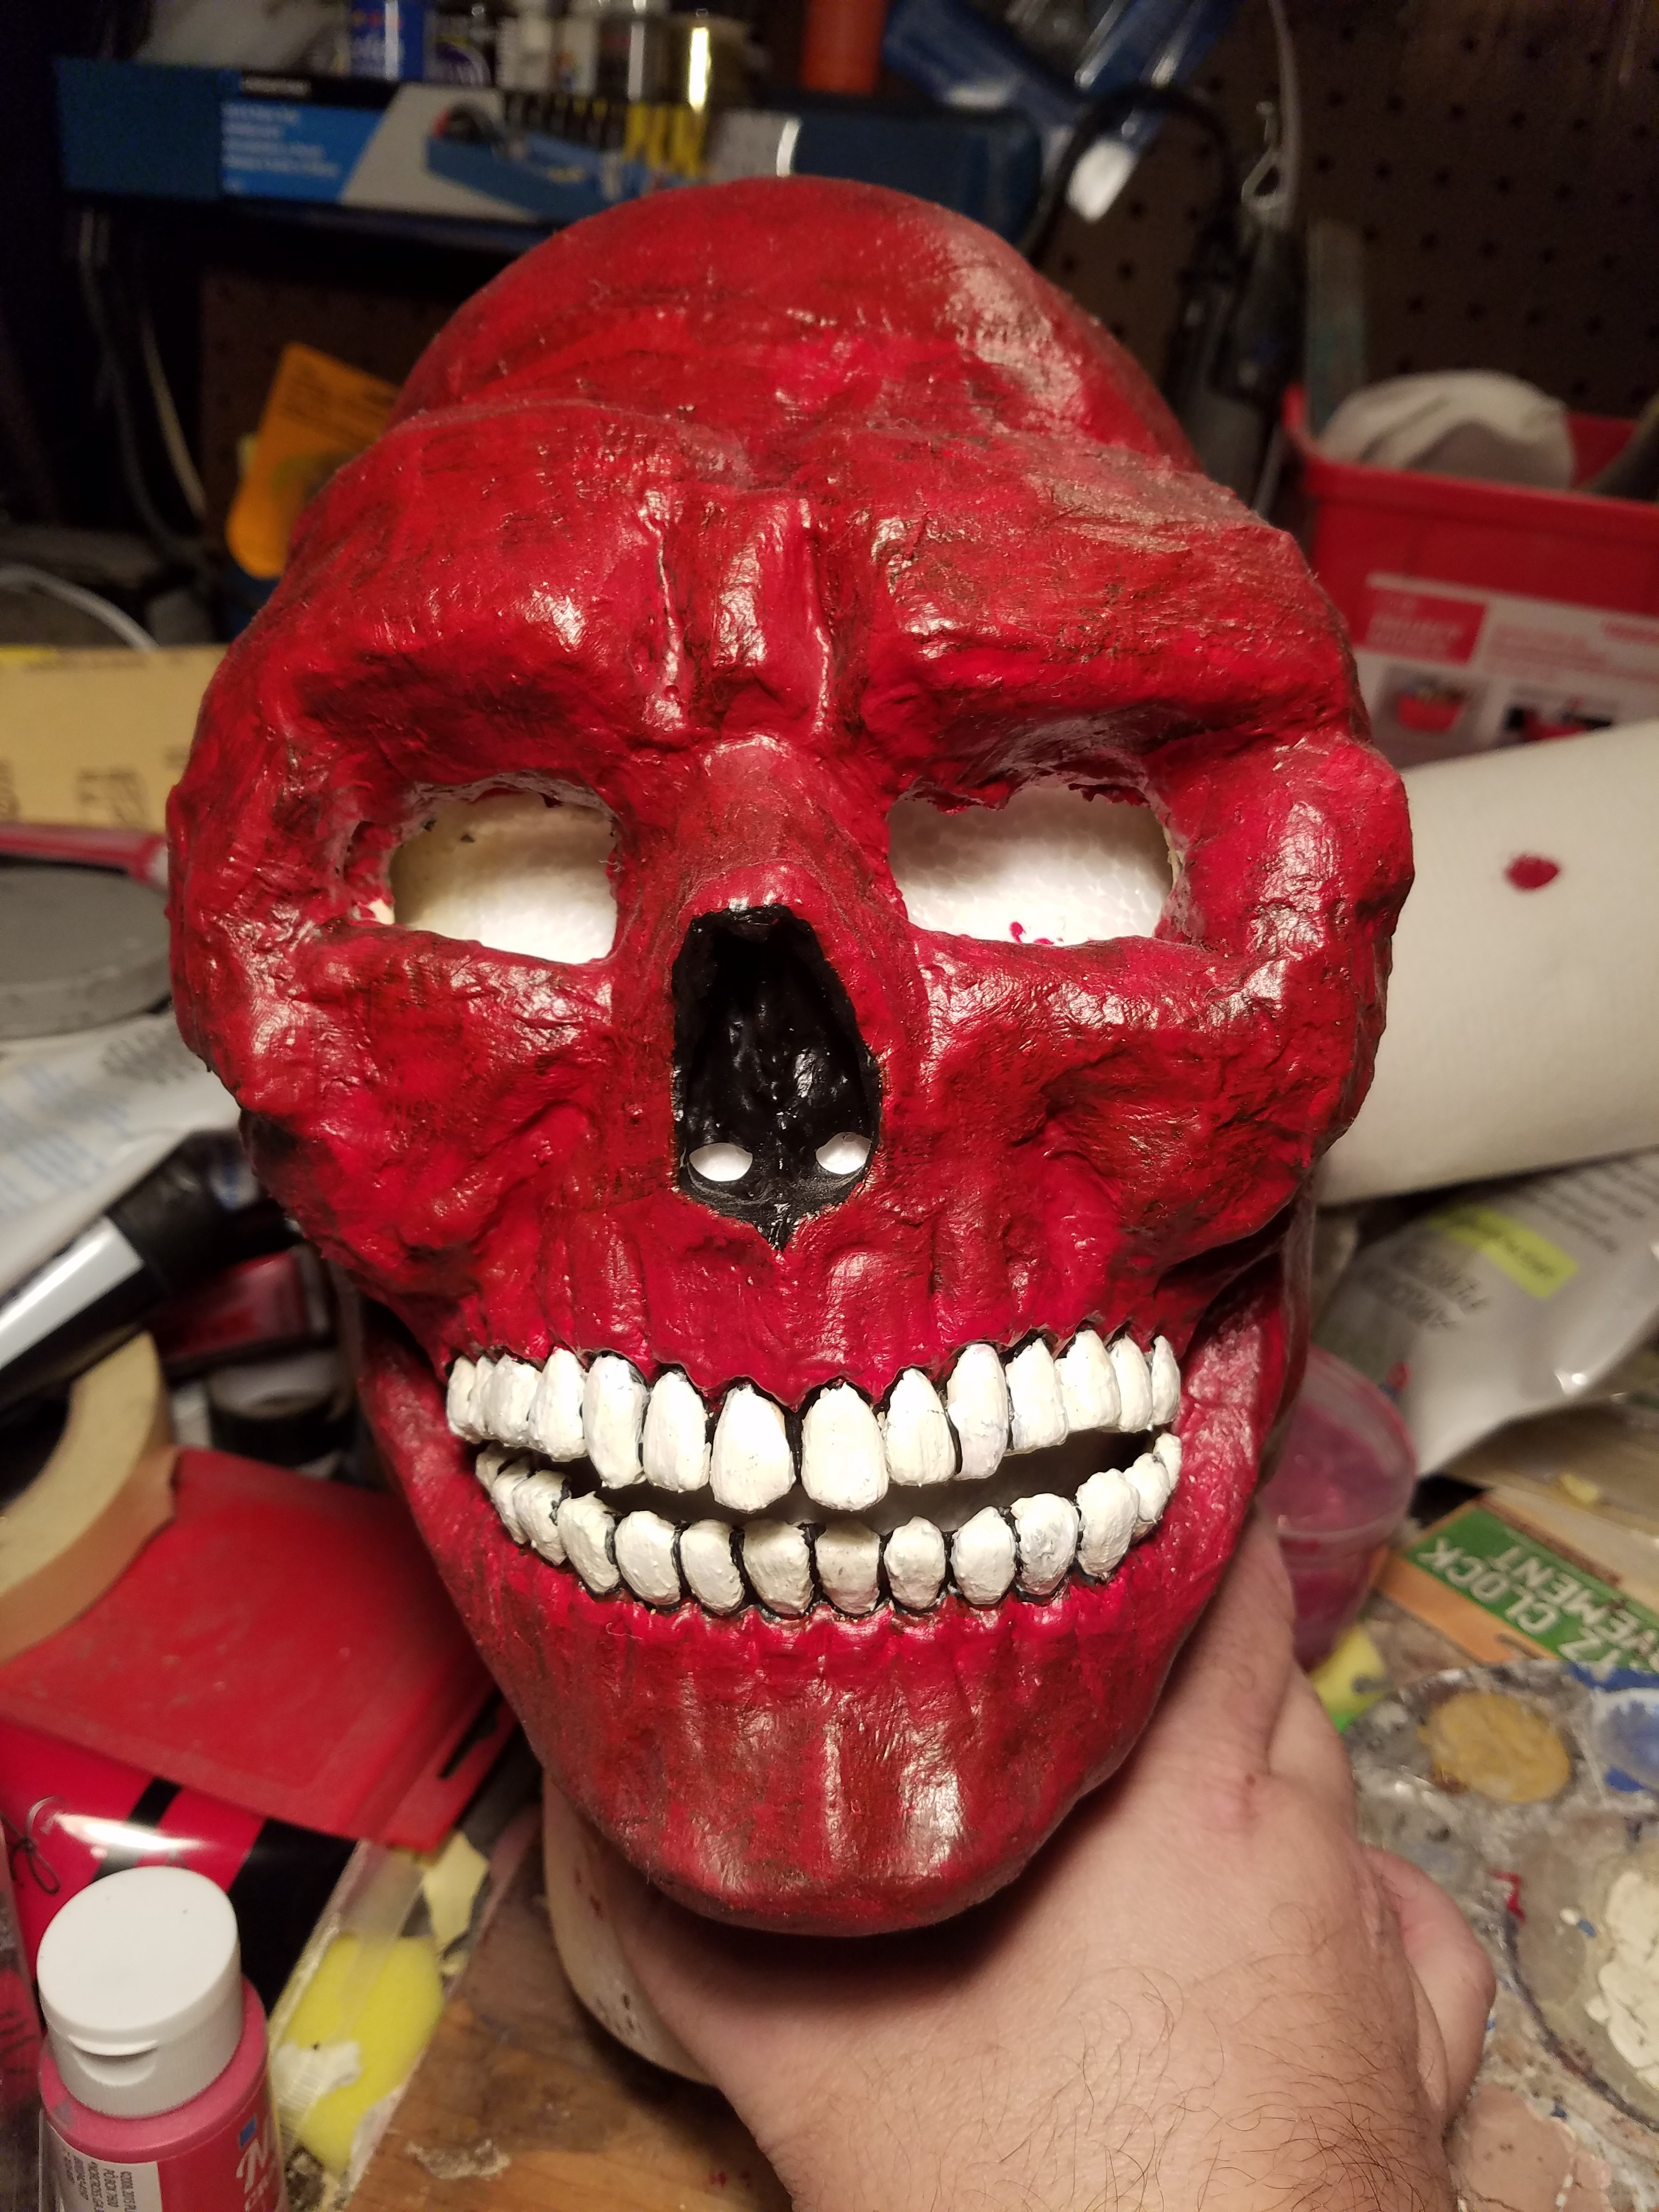 Picture of How to Make a Red Skull Mask From a Rubber Skull Mask